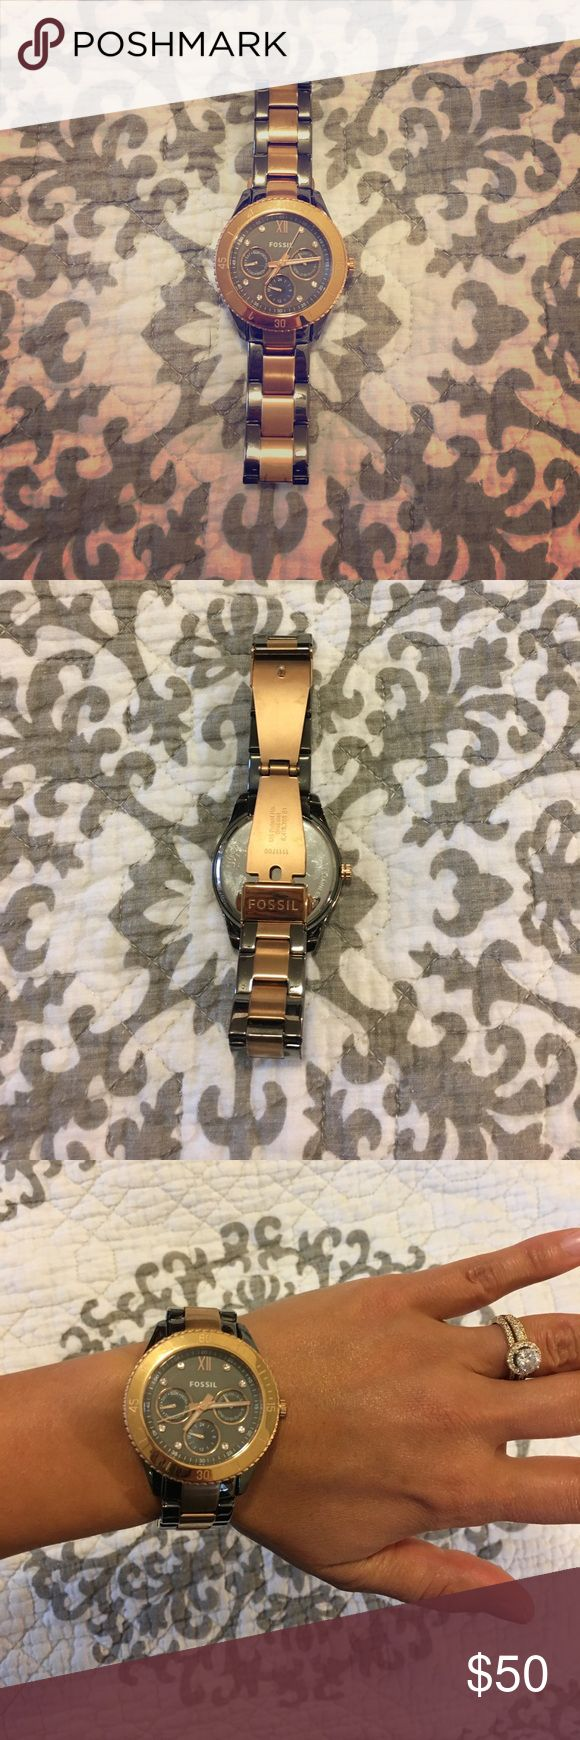 Fossil Boyfriend watch in Rose Gold Fossil boyfriend watch in pewter and rose gold. Mild wear, no scratches to the face. Battery works! Extra links not included. Fossil Accessories Watches